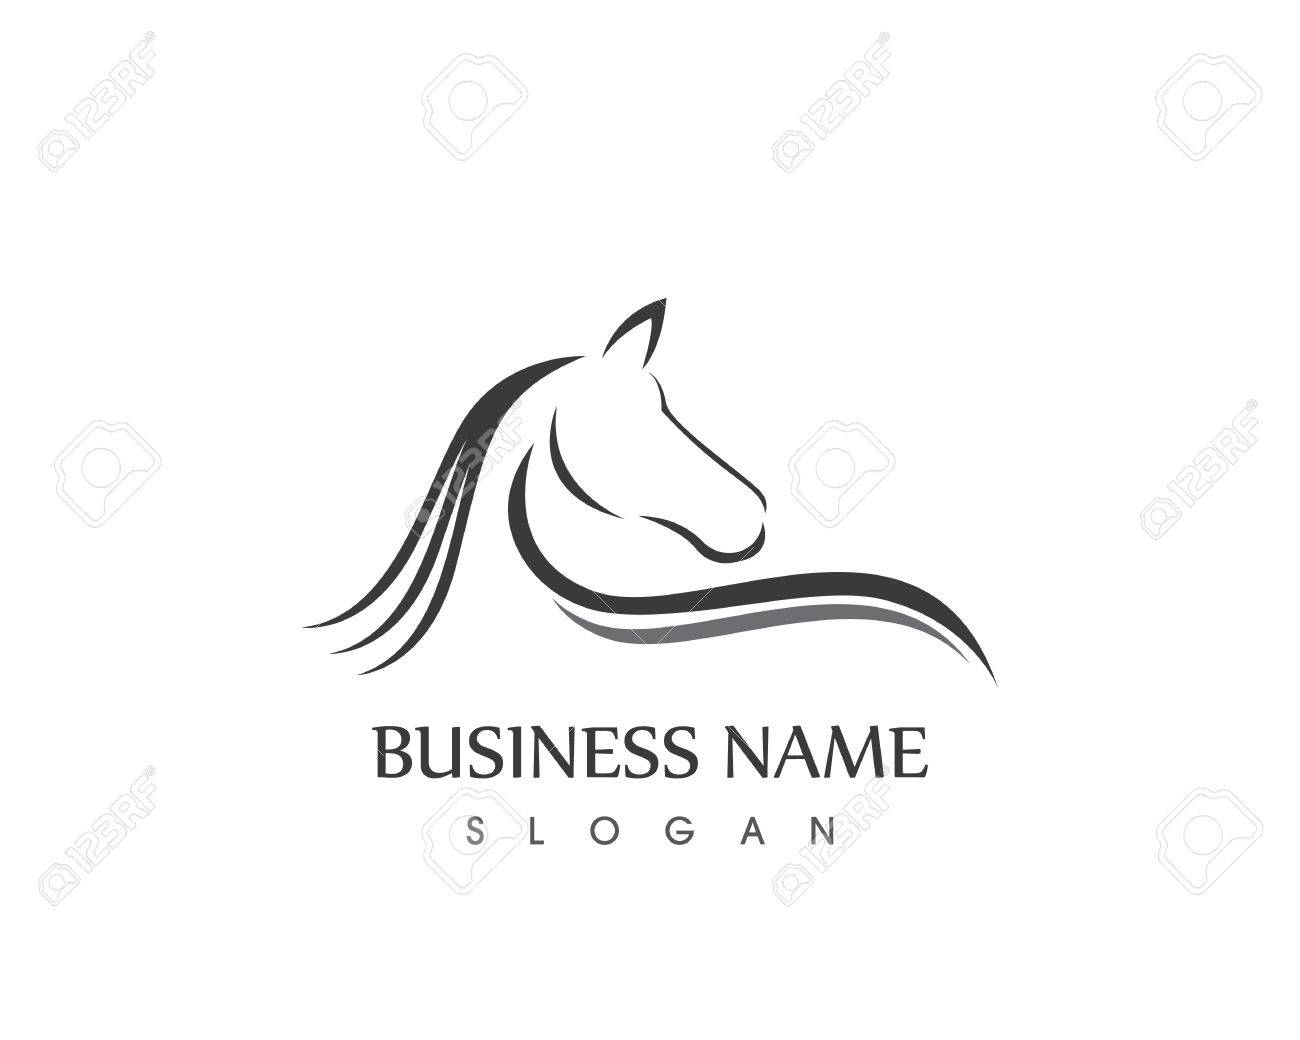 Horse Head Silhouette Logo Vector Design Royalty Free Cliparts Vectors And Stock Illustration Image 82438314